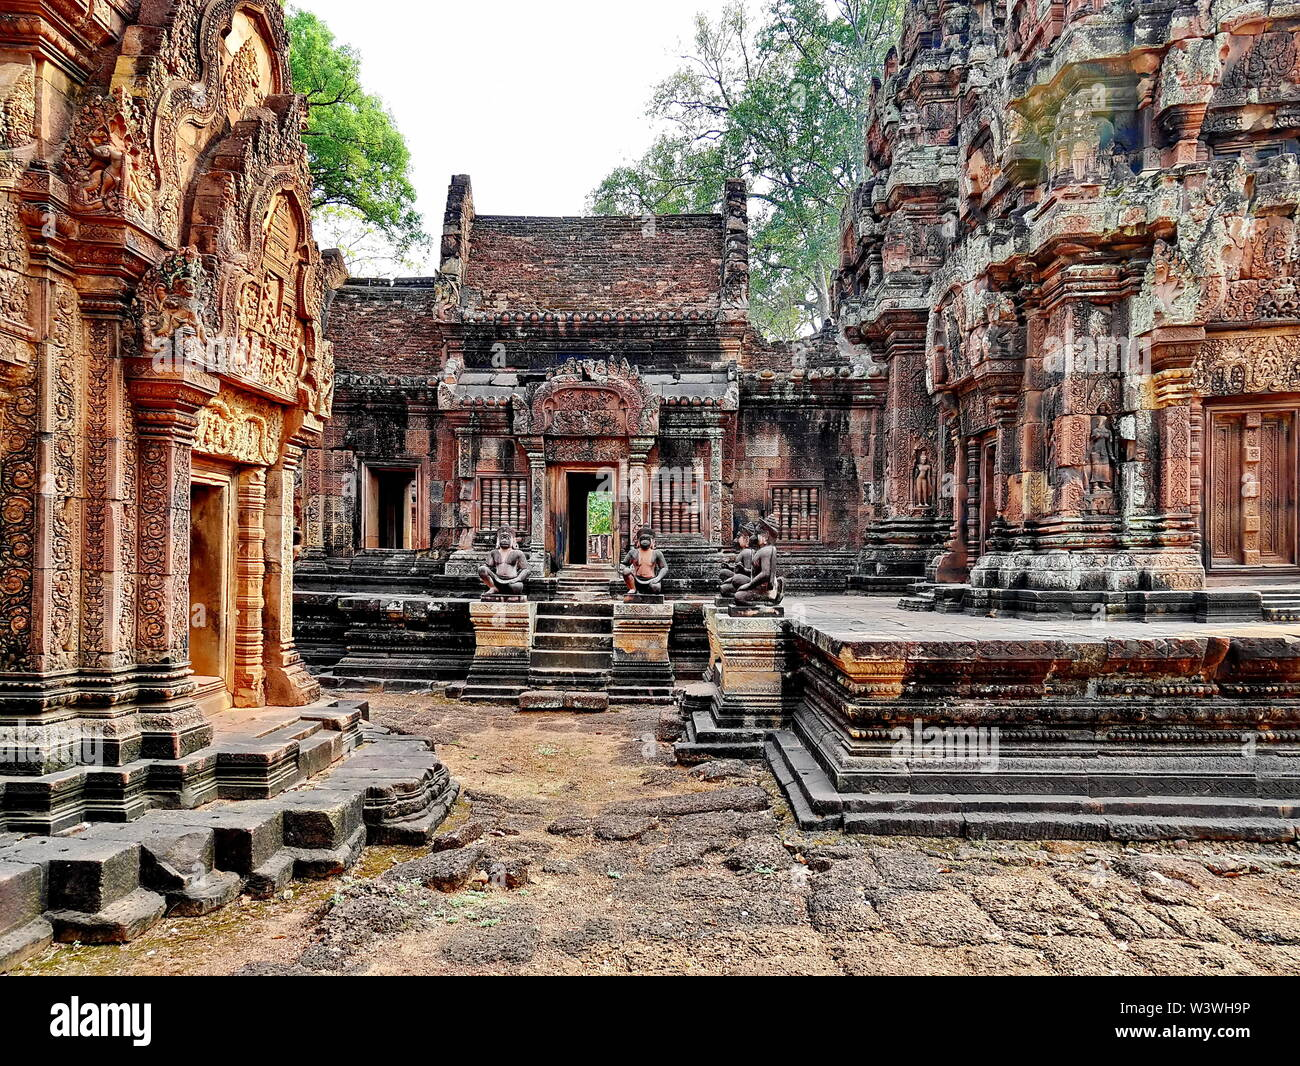 Banteay Srei Siem Reap Castle is one of the most  beautiful castles in Cambodia Construction of pink sandstone Carved into patterns related to Hinduis - Stock Image